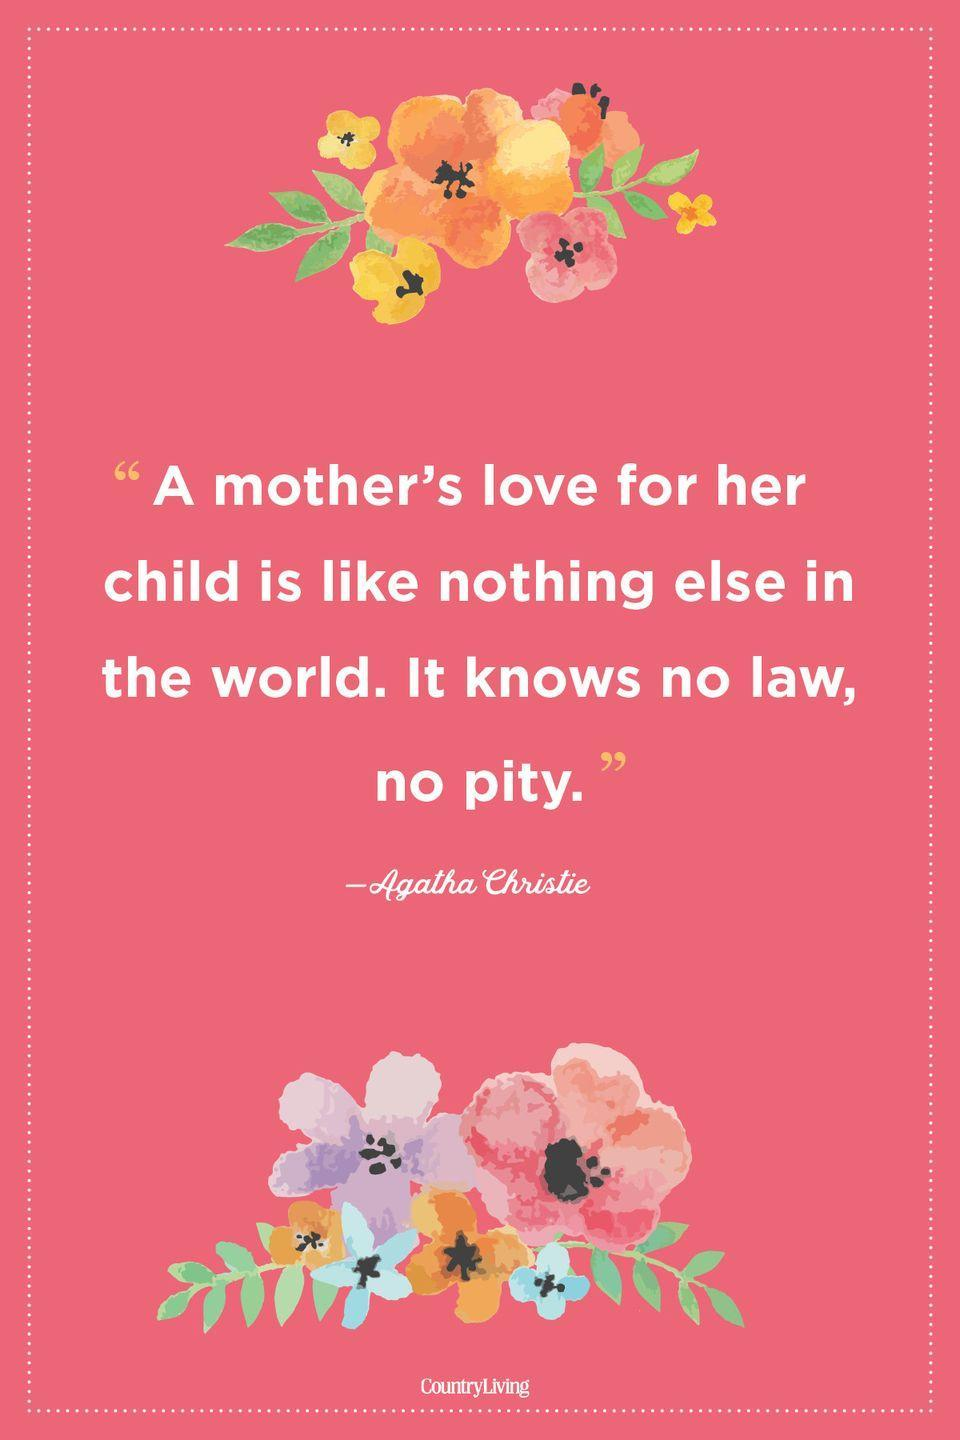 "<p>""A mother's love for her child is like nothing else in the world. It knows no law, no pity.""</p>"